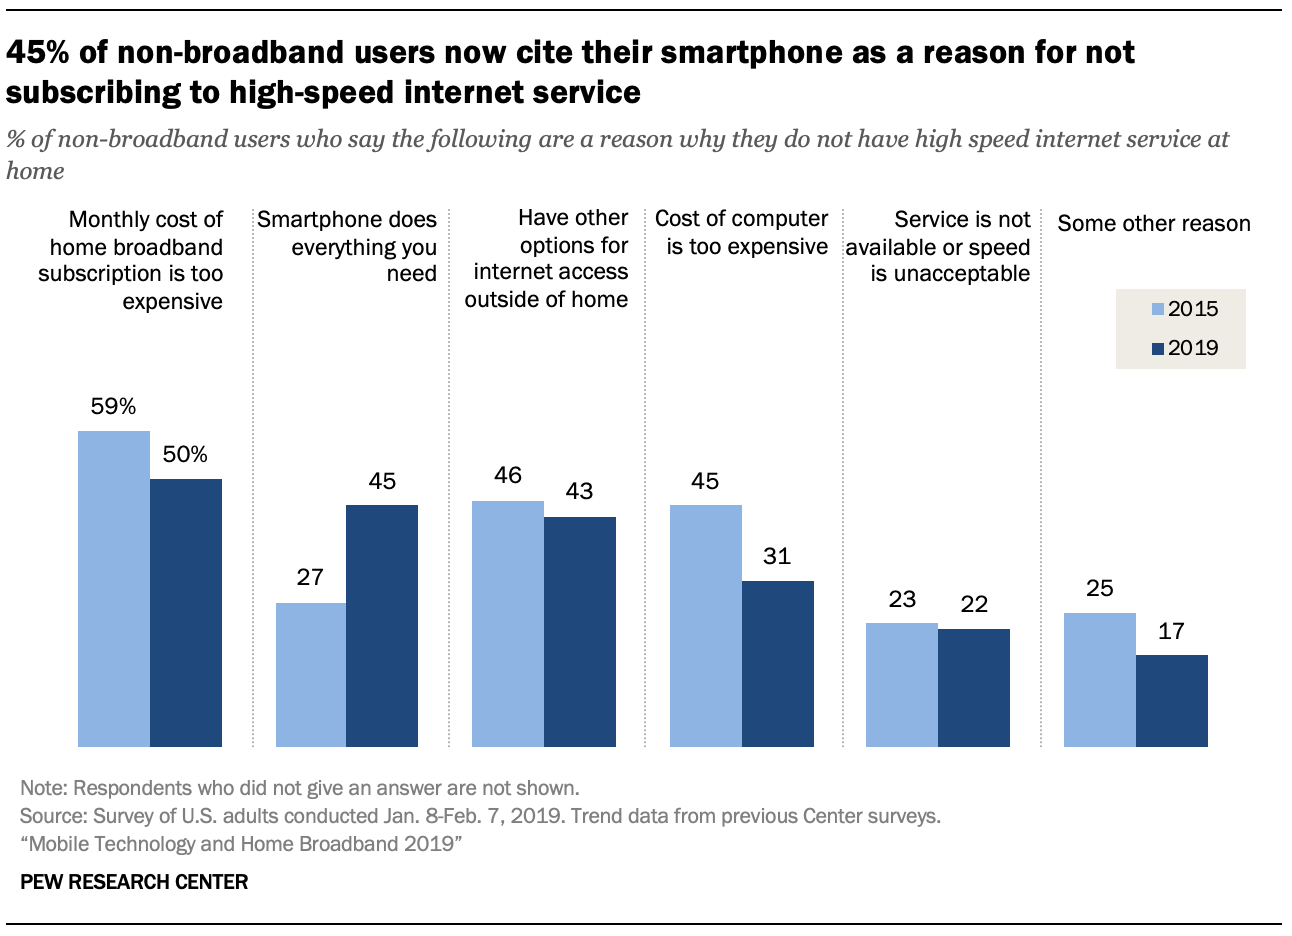 A chart showing 45% of non-broadband users now cite their smartphone as a reason for not subscribing to high-speed internet service